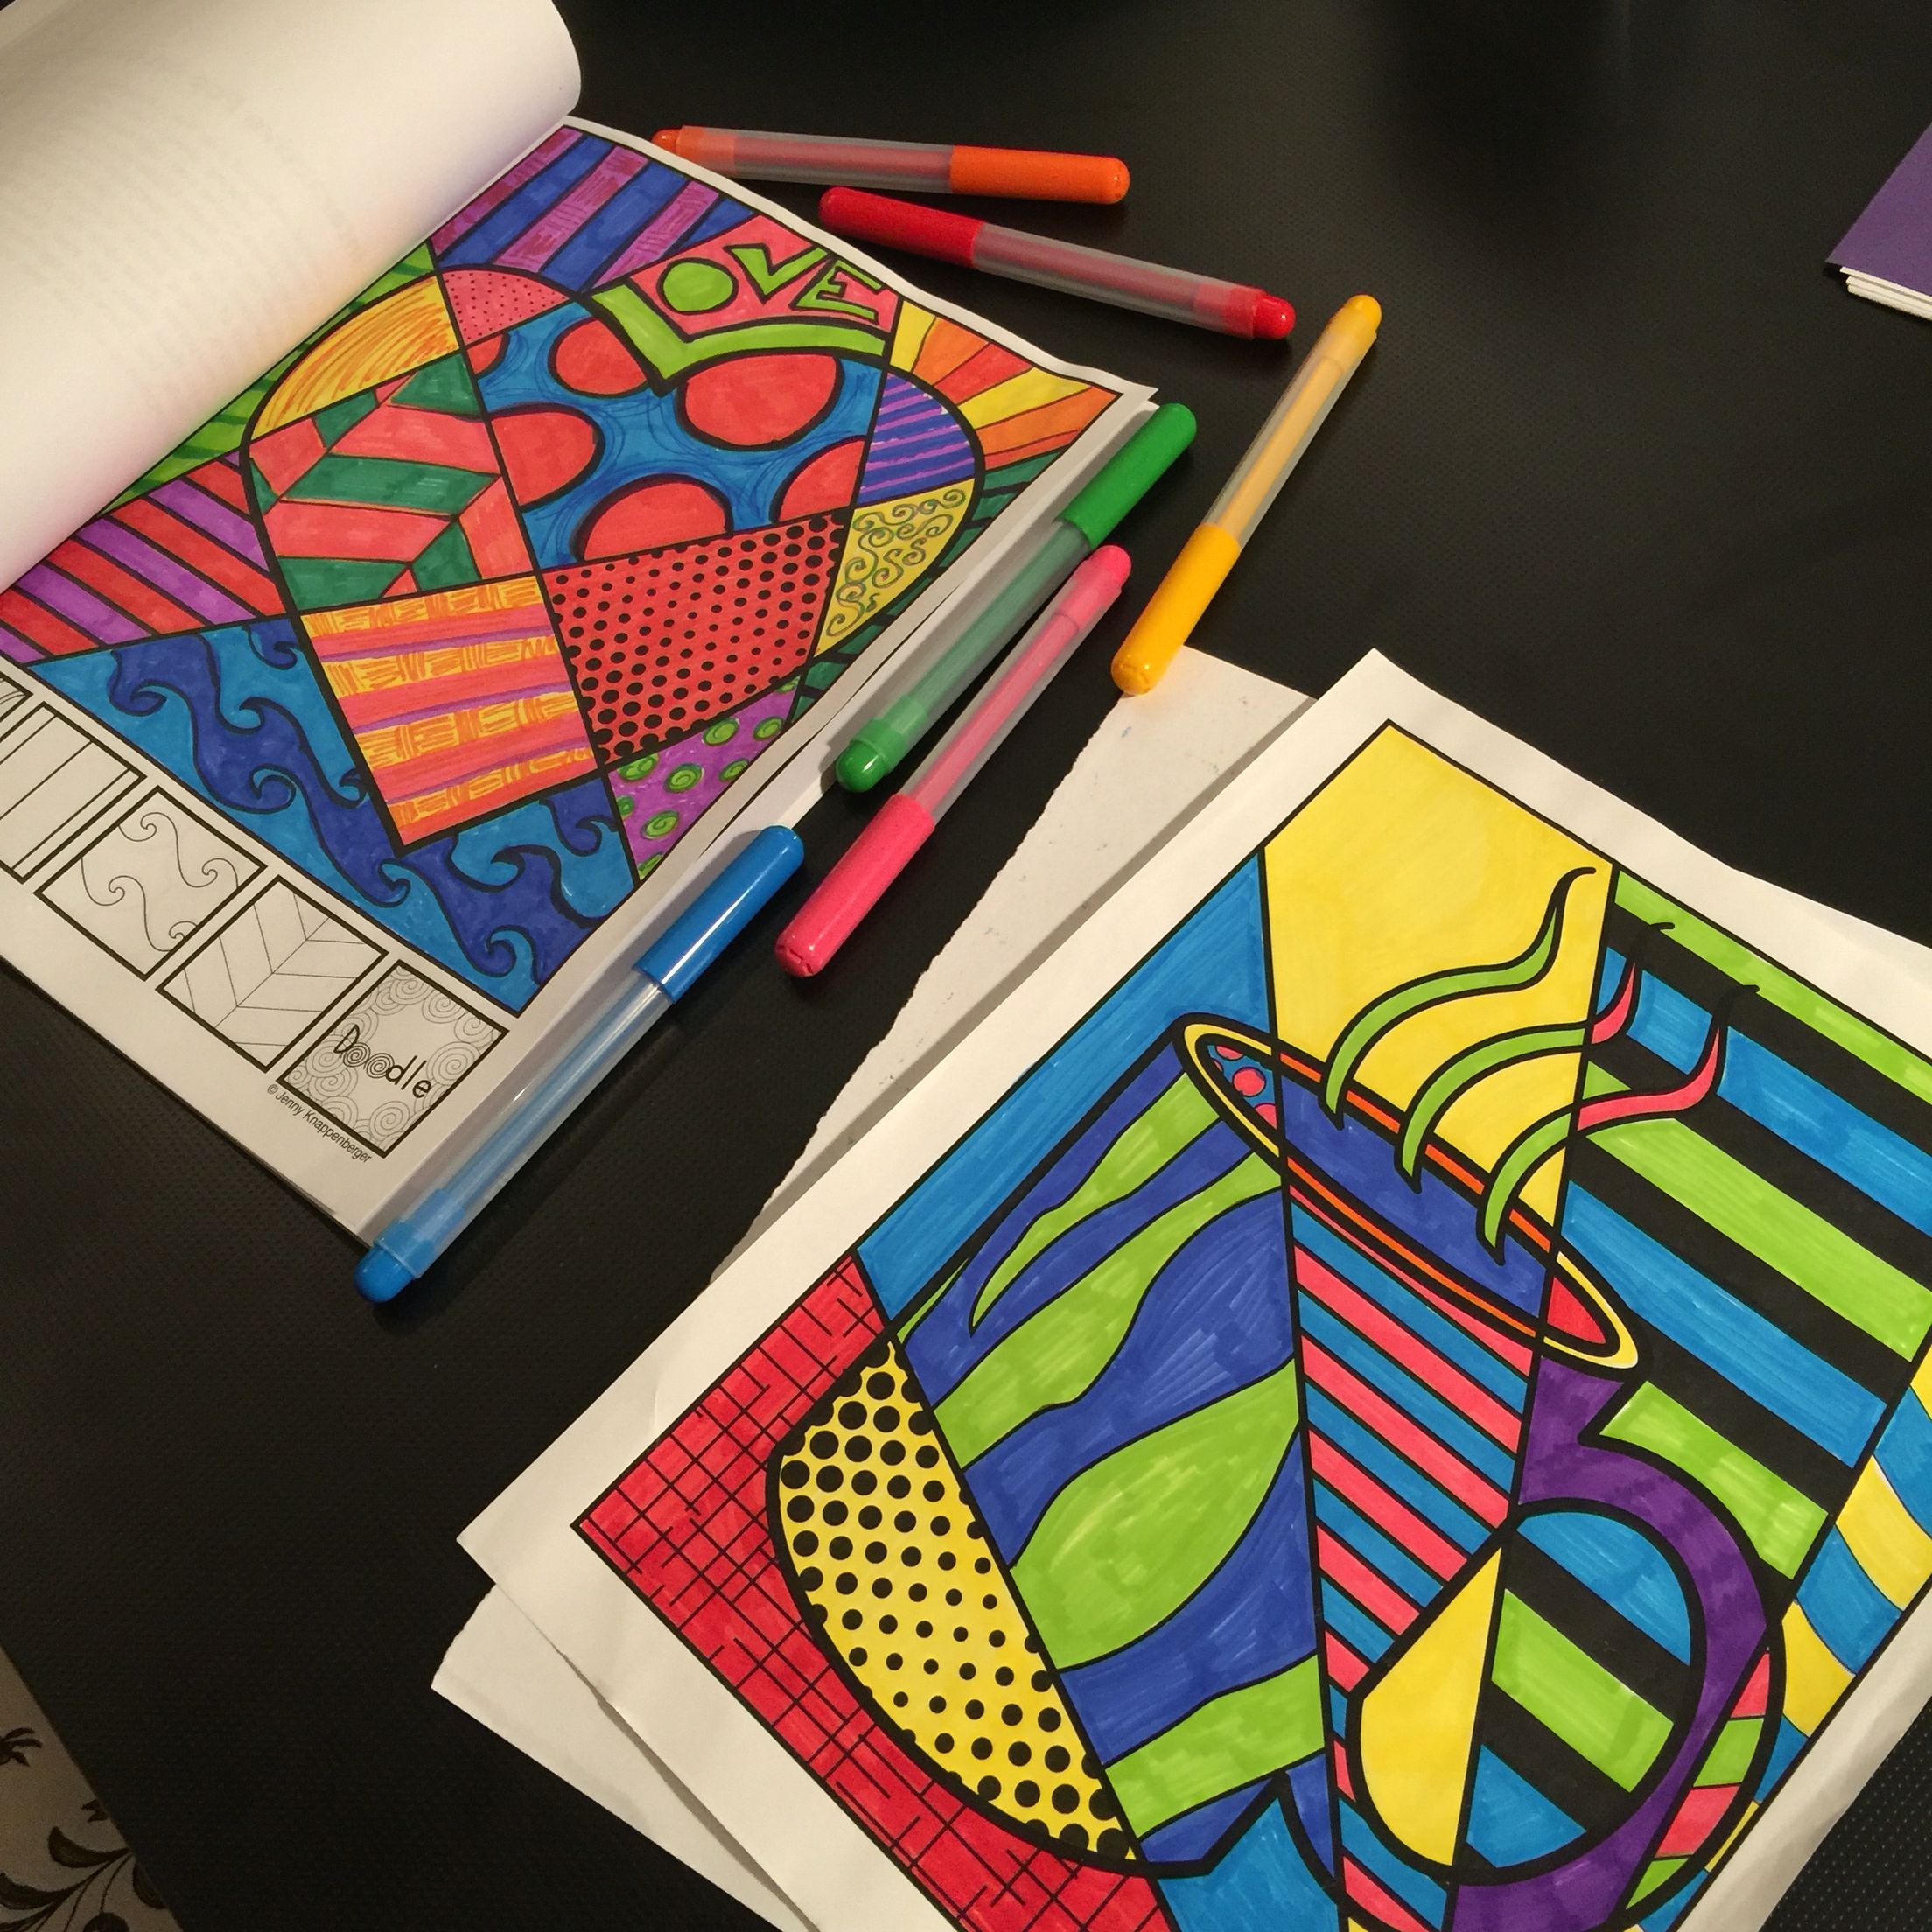 Adult Coloring Pages These Fun Pop Art Themed Coloring